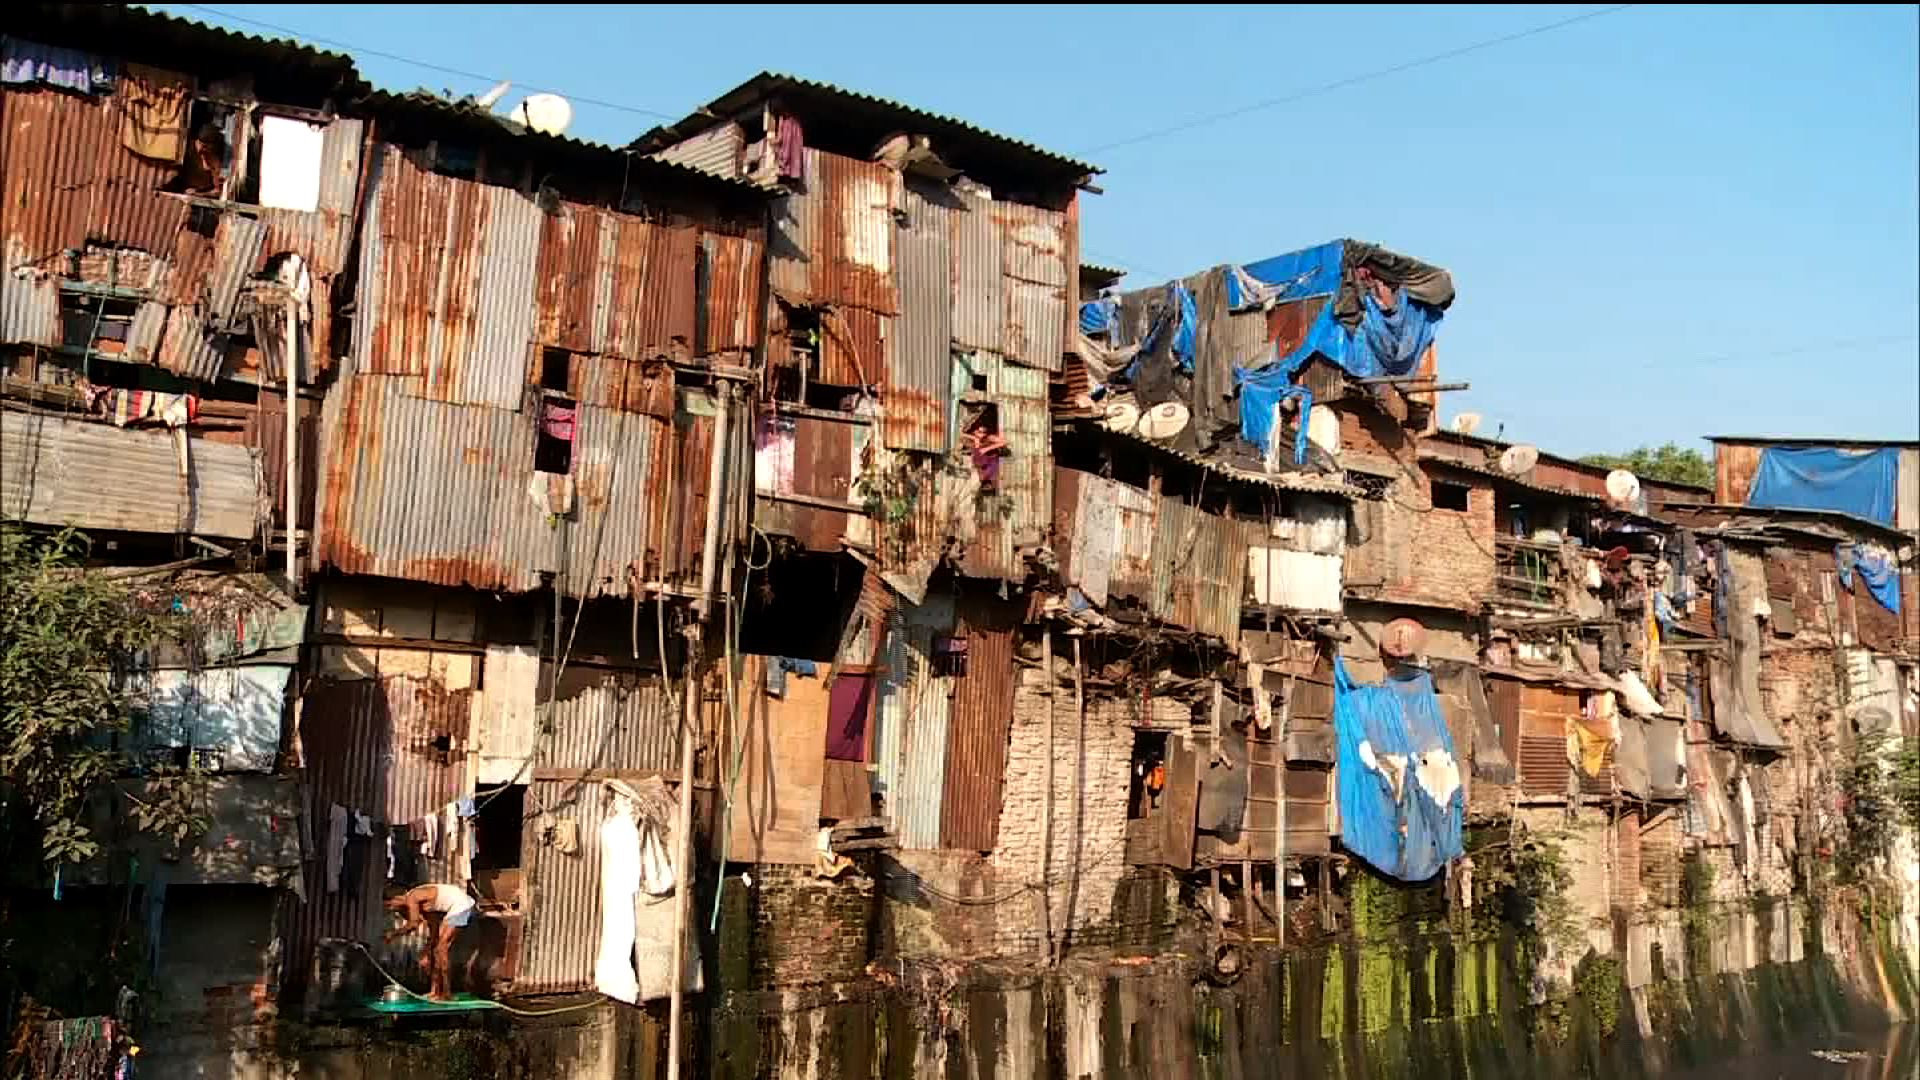 There May Still Be Hope For The Slums...